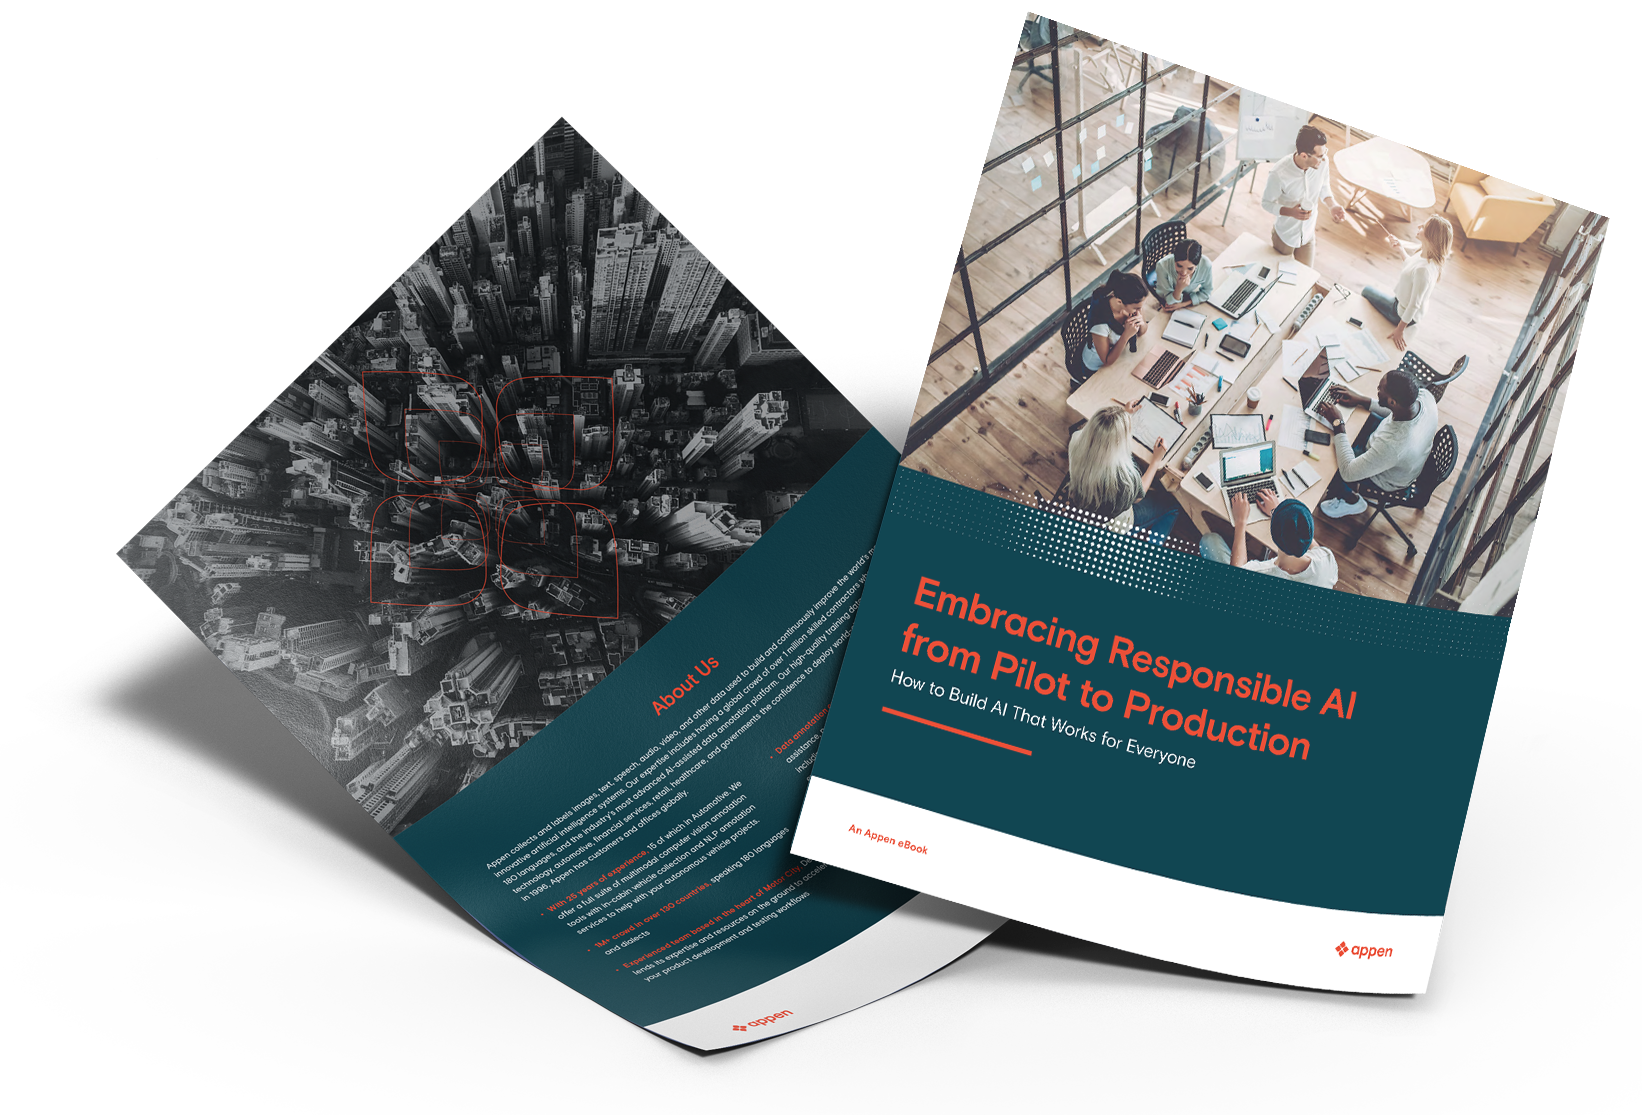 Embracing Responsible AI from Pilot to Production ebook cover